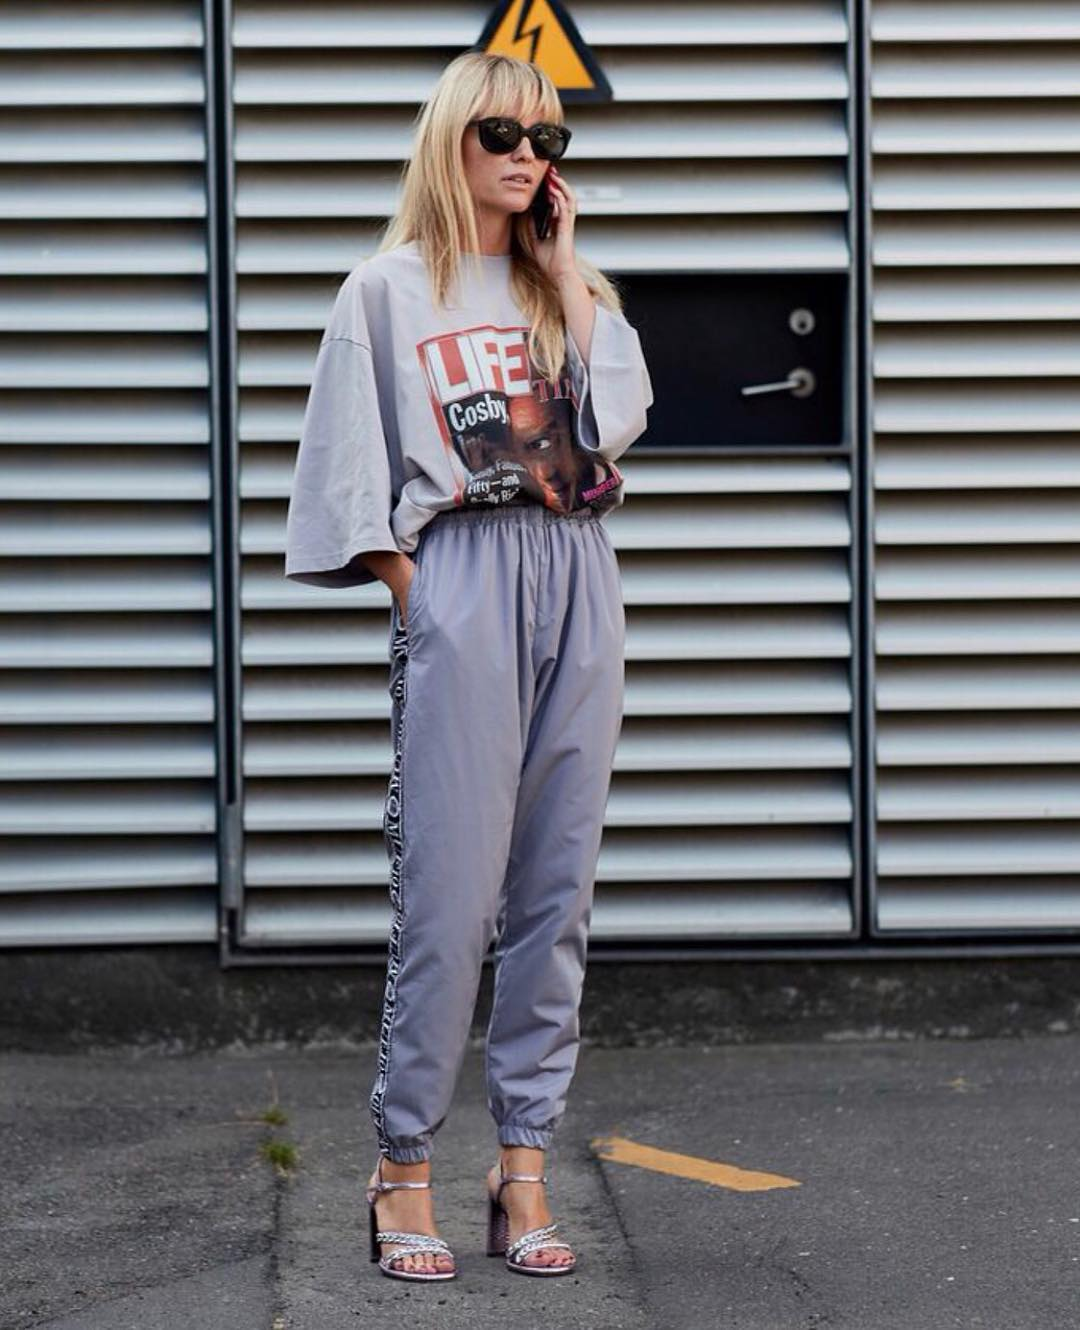 jeanette-madsen-track-pants-ankle-cuffs-outfit